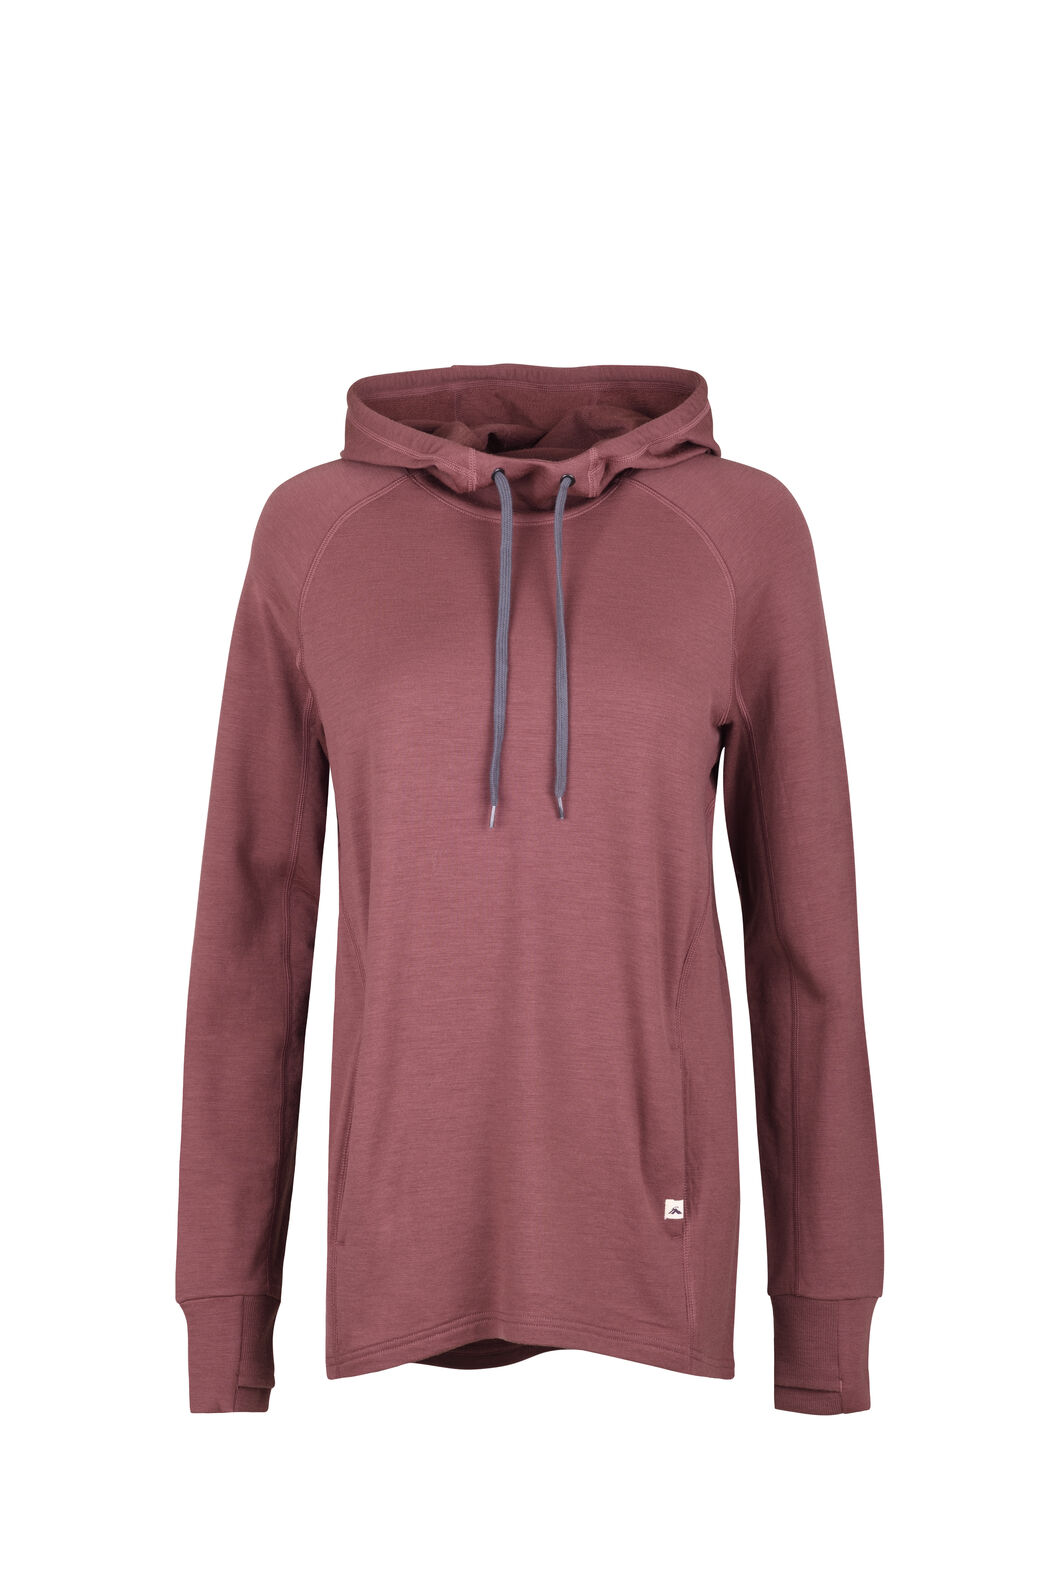 Macpac Lucille Merino Hooded Pullover — Women's, Wild Ginger, hi-res